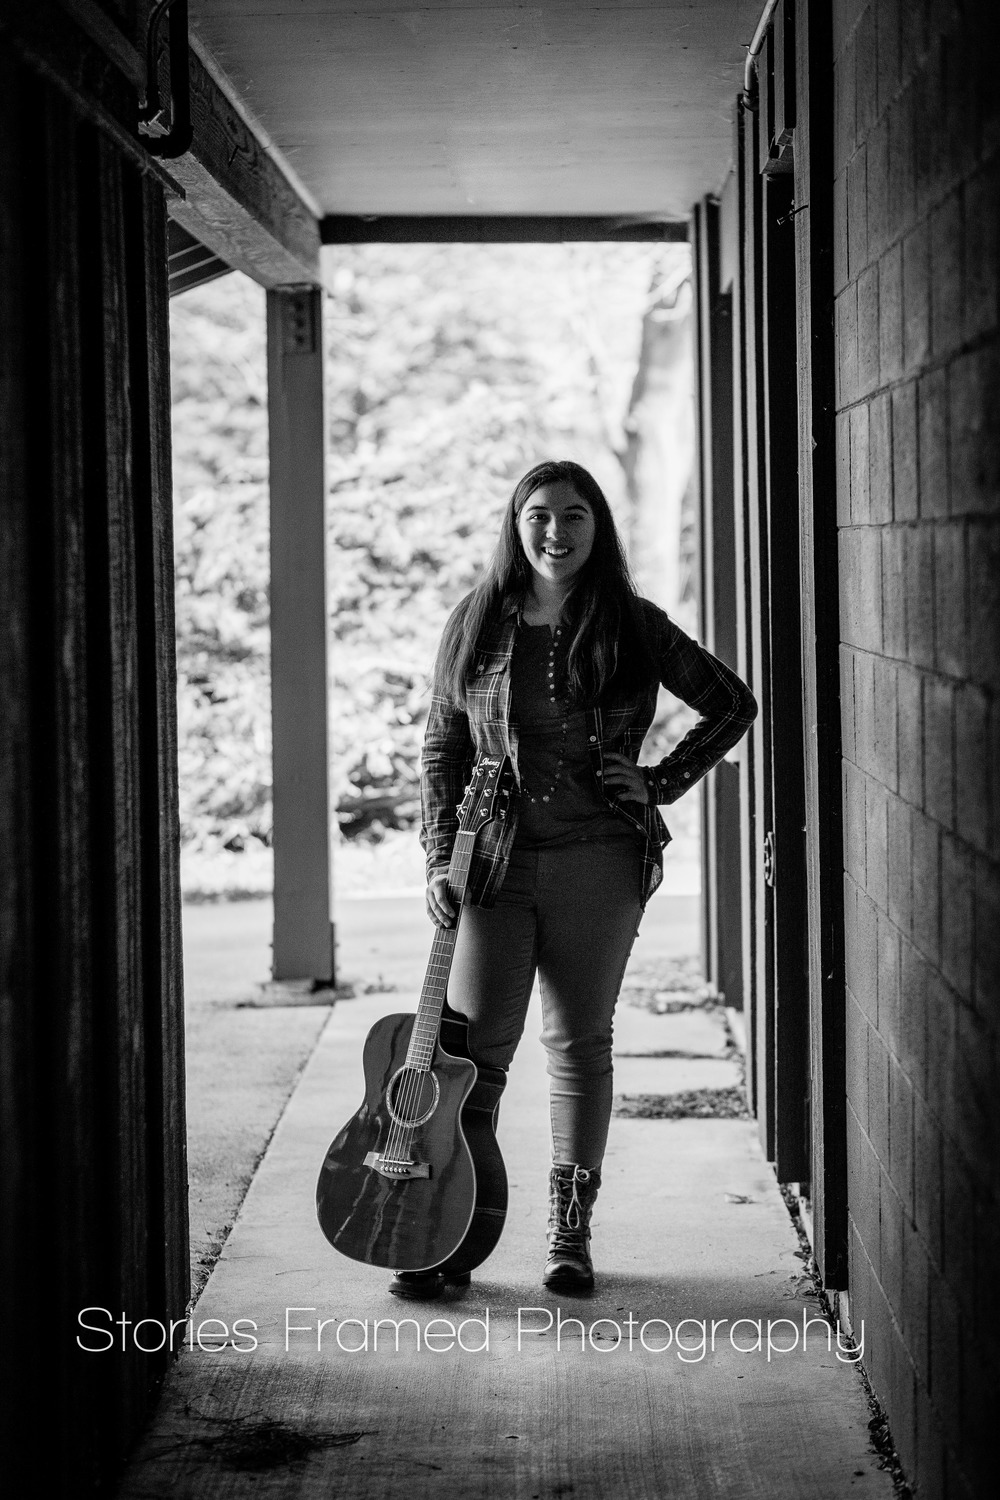 Stories Framed Photography | senior pictures | Pius XI HS class of 2015 | silhouette with guitar